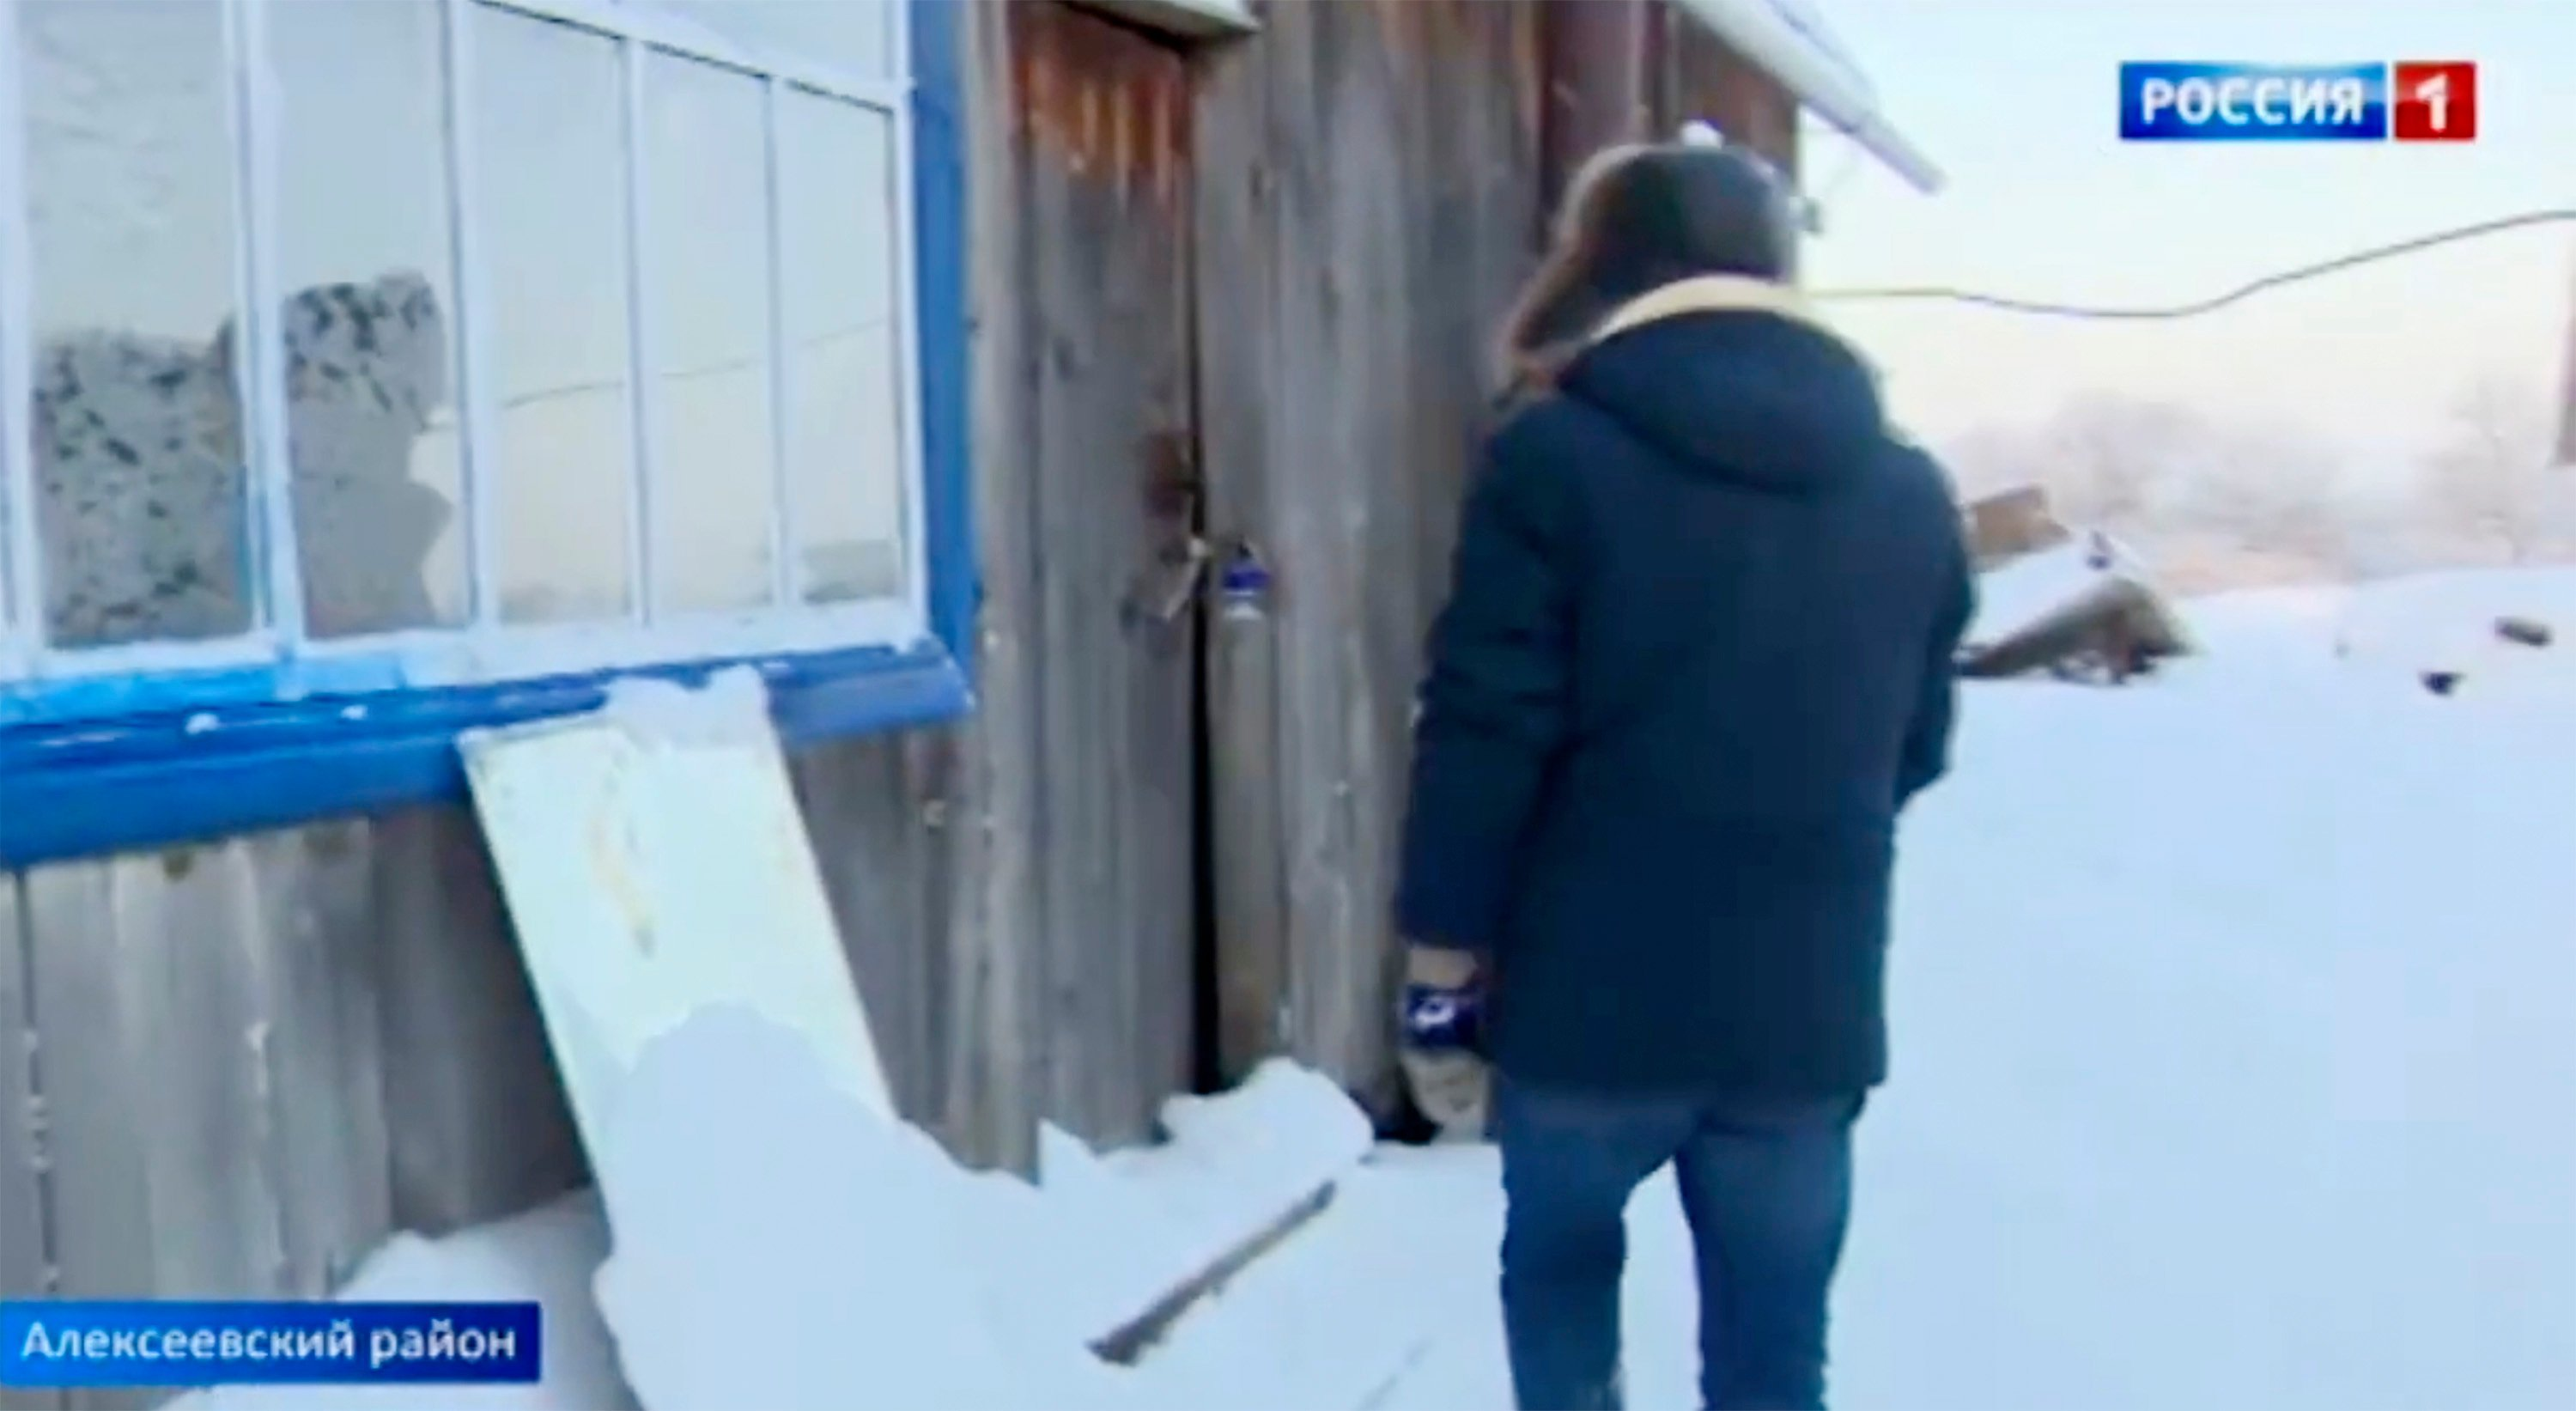 Journalist stands in front of the abandoned house where the boy was found